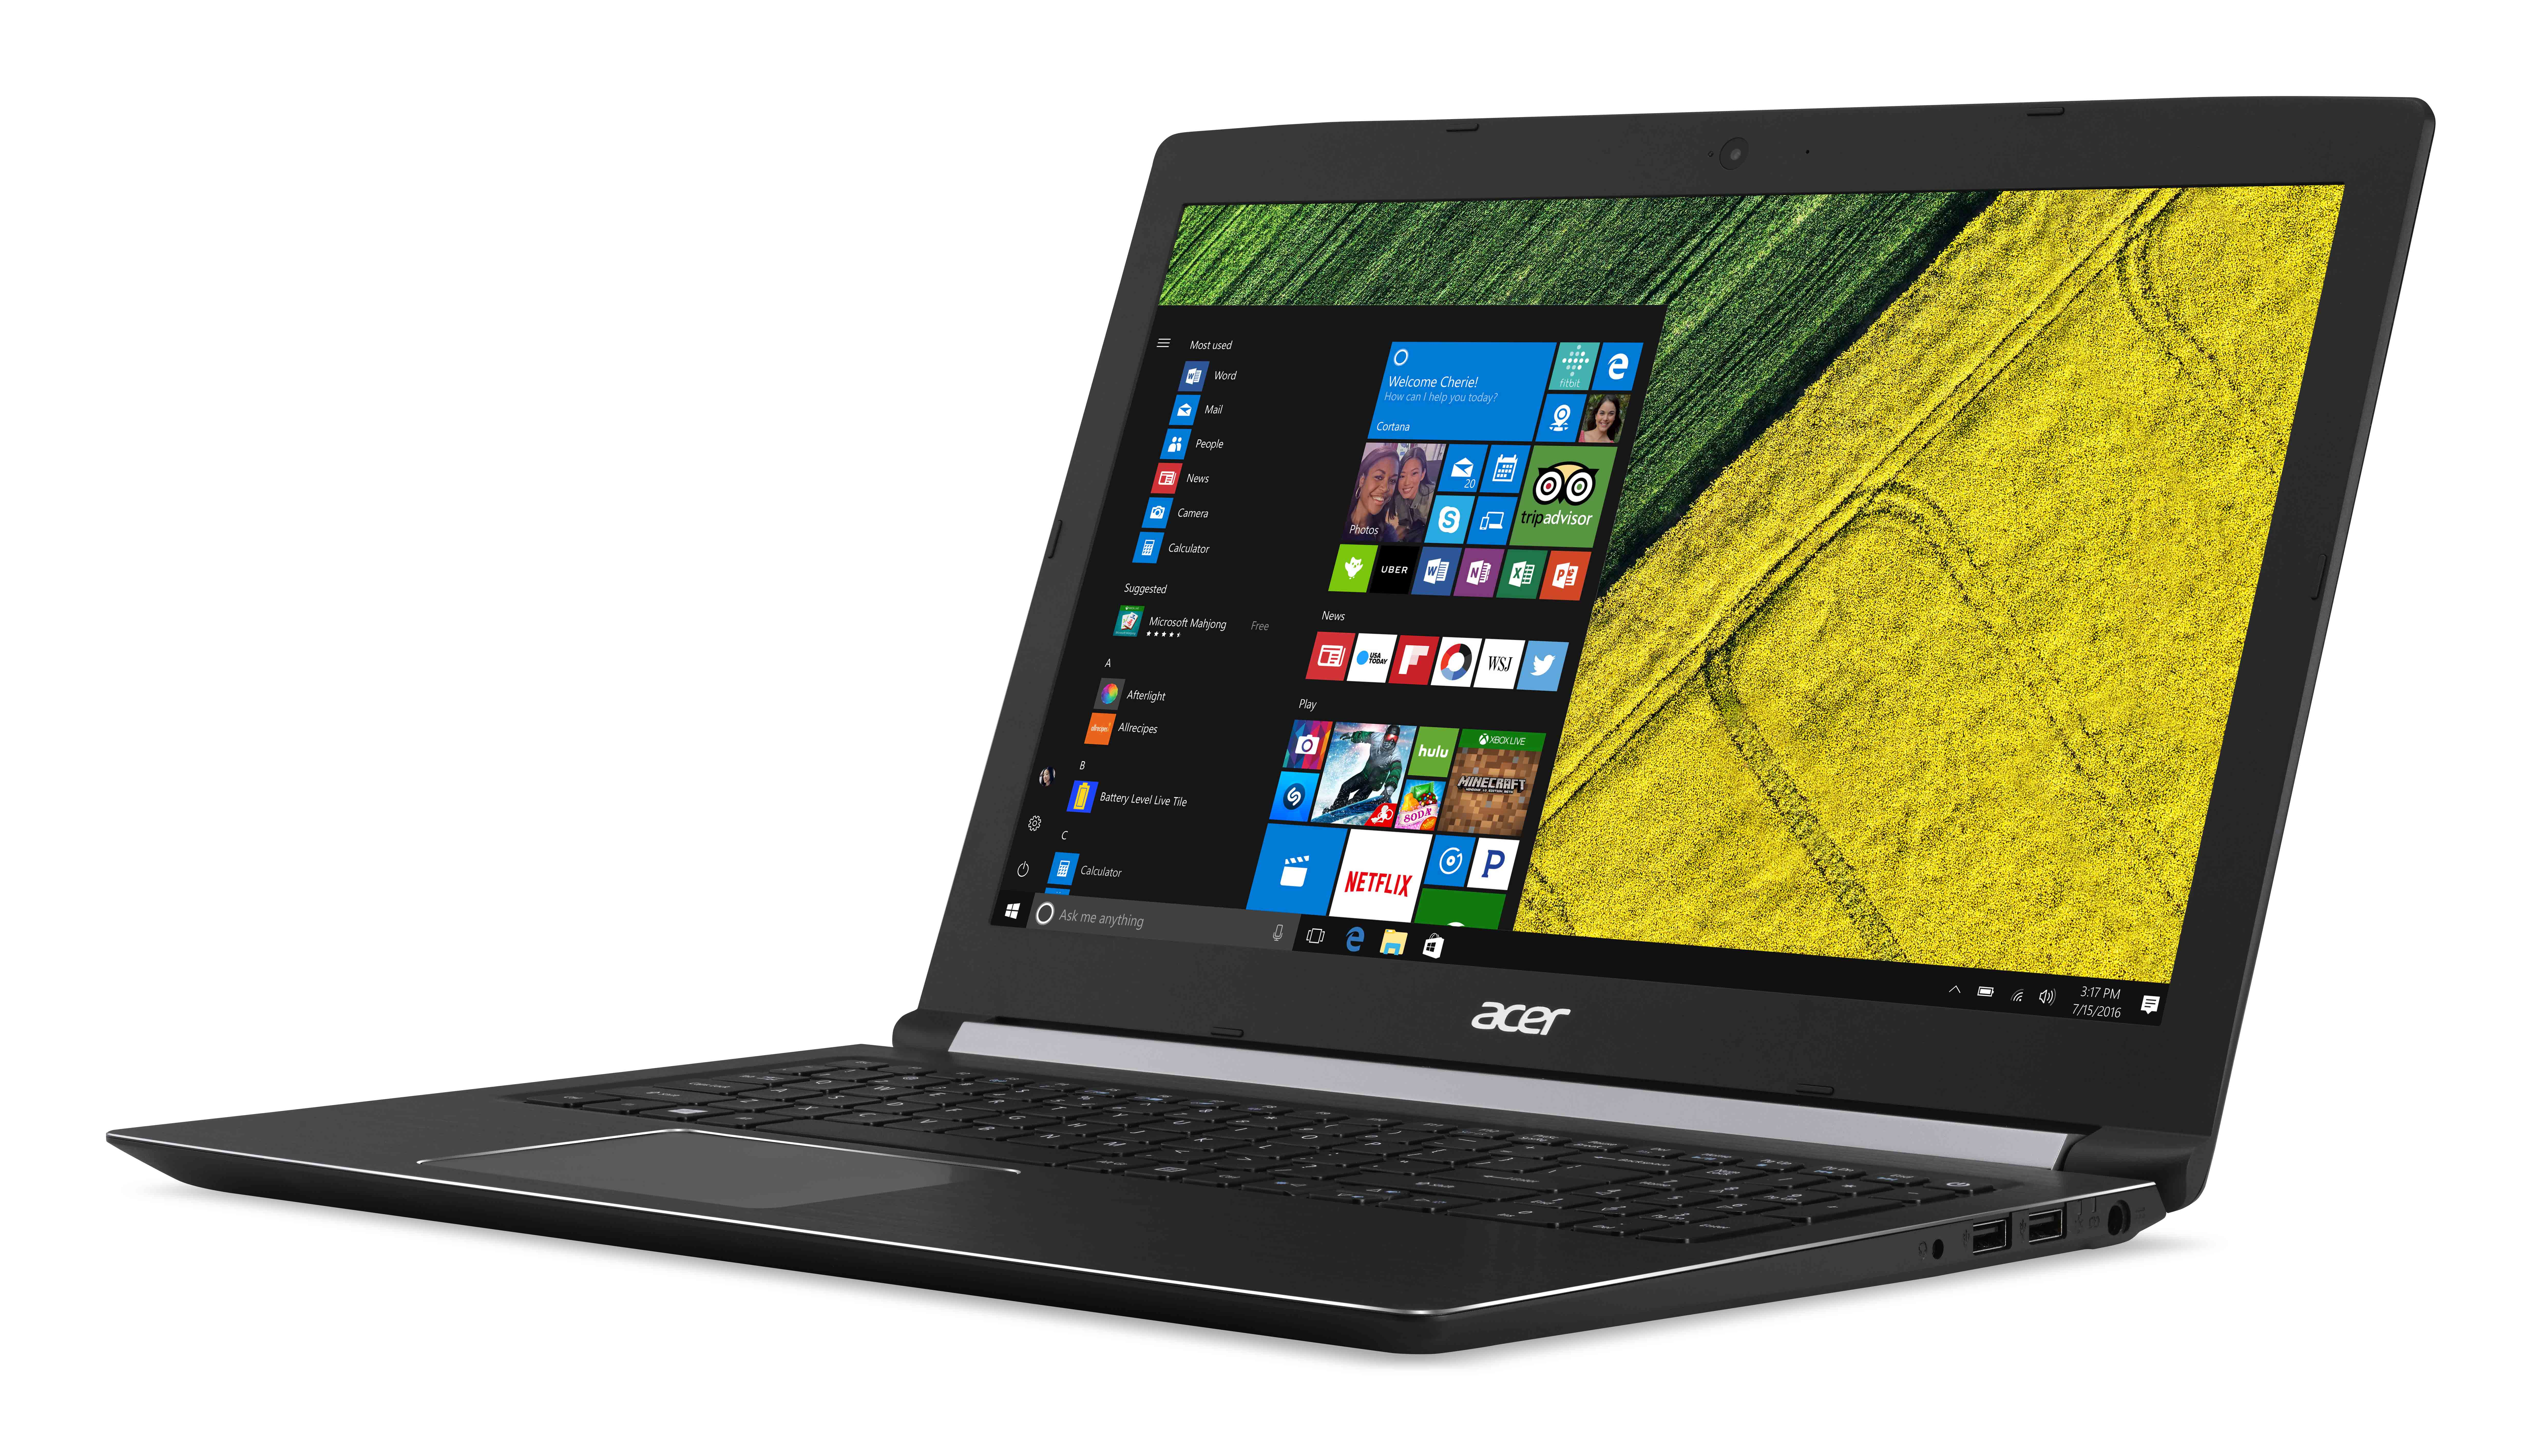 Cheaper computer - Lastly There S The Top Of The Line Aspire 7 Series Starting At 799 It S The Best Of The Lineup With An Aluminum Case Intel S Kaby Lake Processors